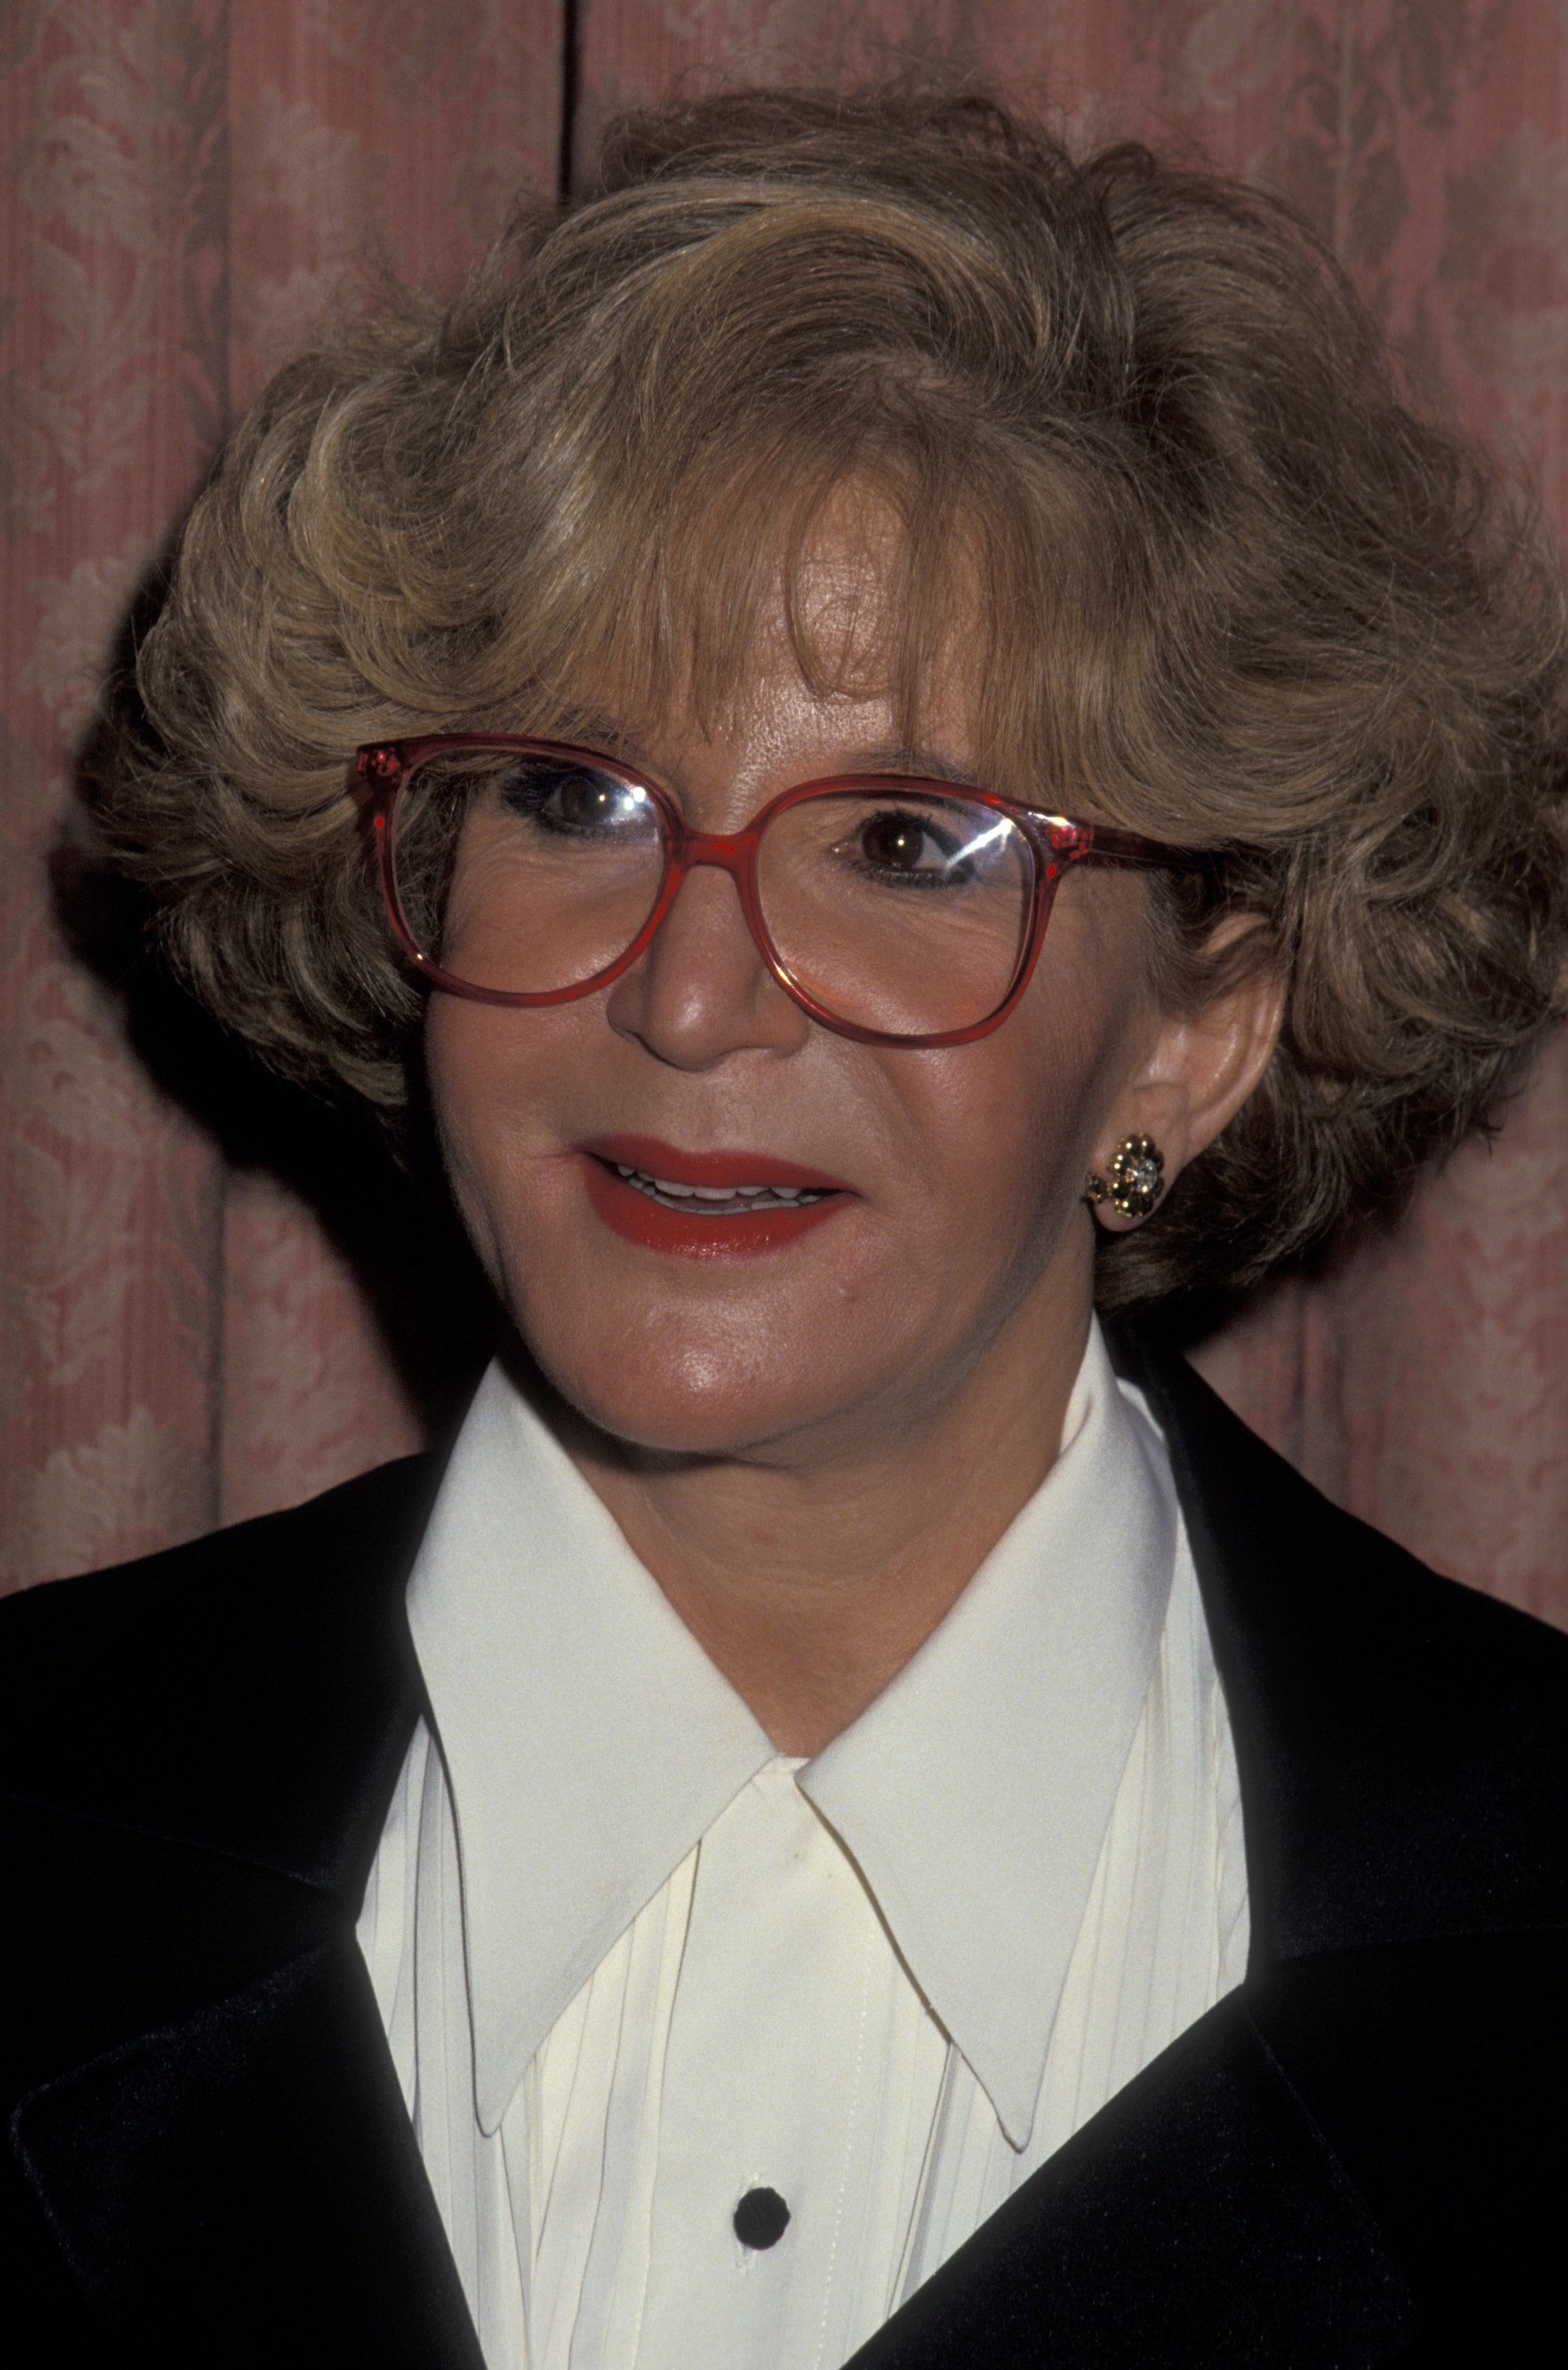 TV Personality Sally Jessy Raphael attending 'Por Los Ninos Gala Honoring Placido Domingo' on March 8, 1993 at the Waldorf Astoria Hotel in New York City, New York. (Photo by Ron Galella, Ltd./WireImage)